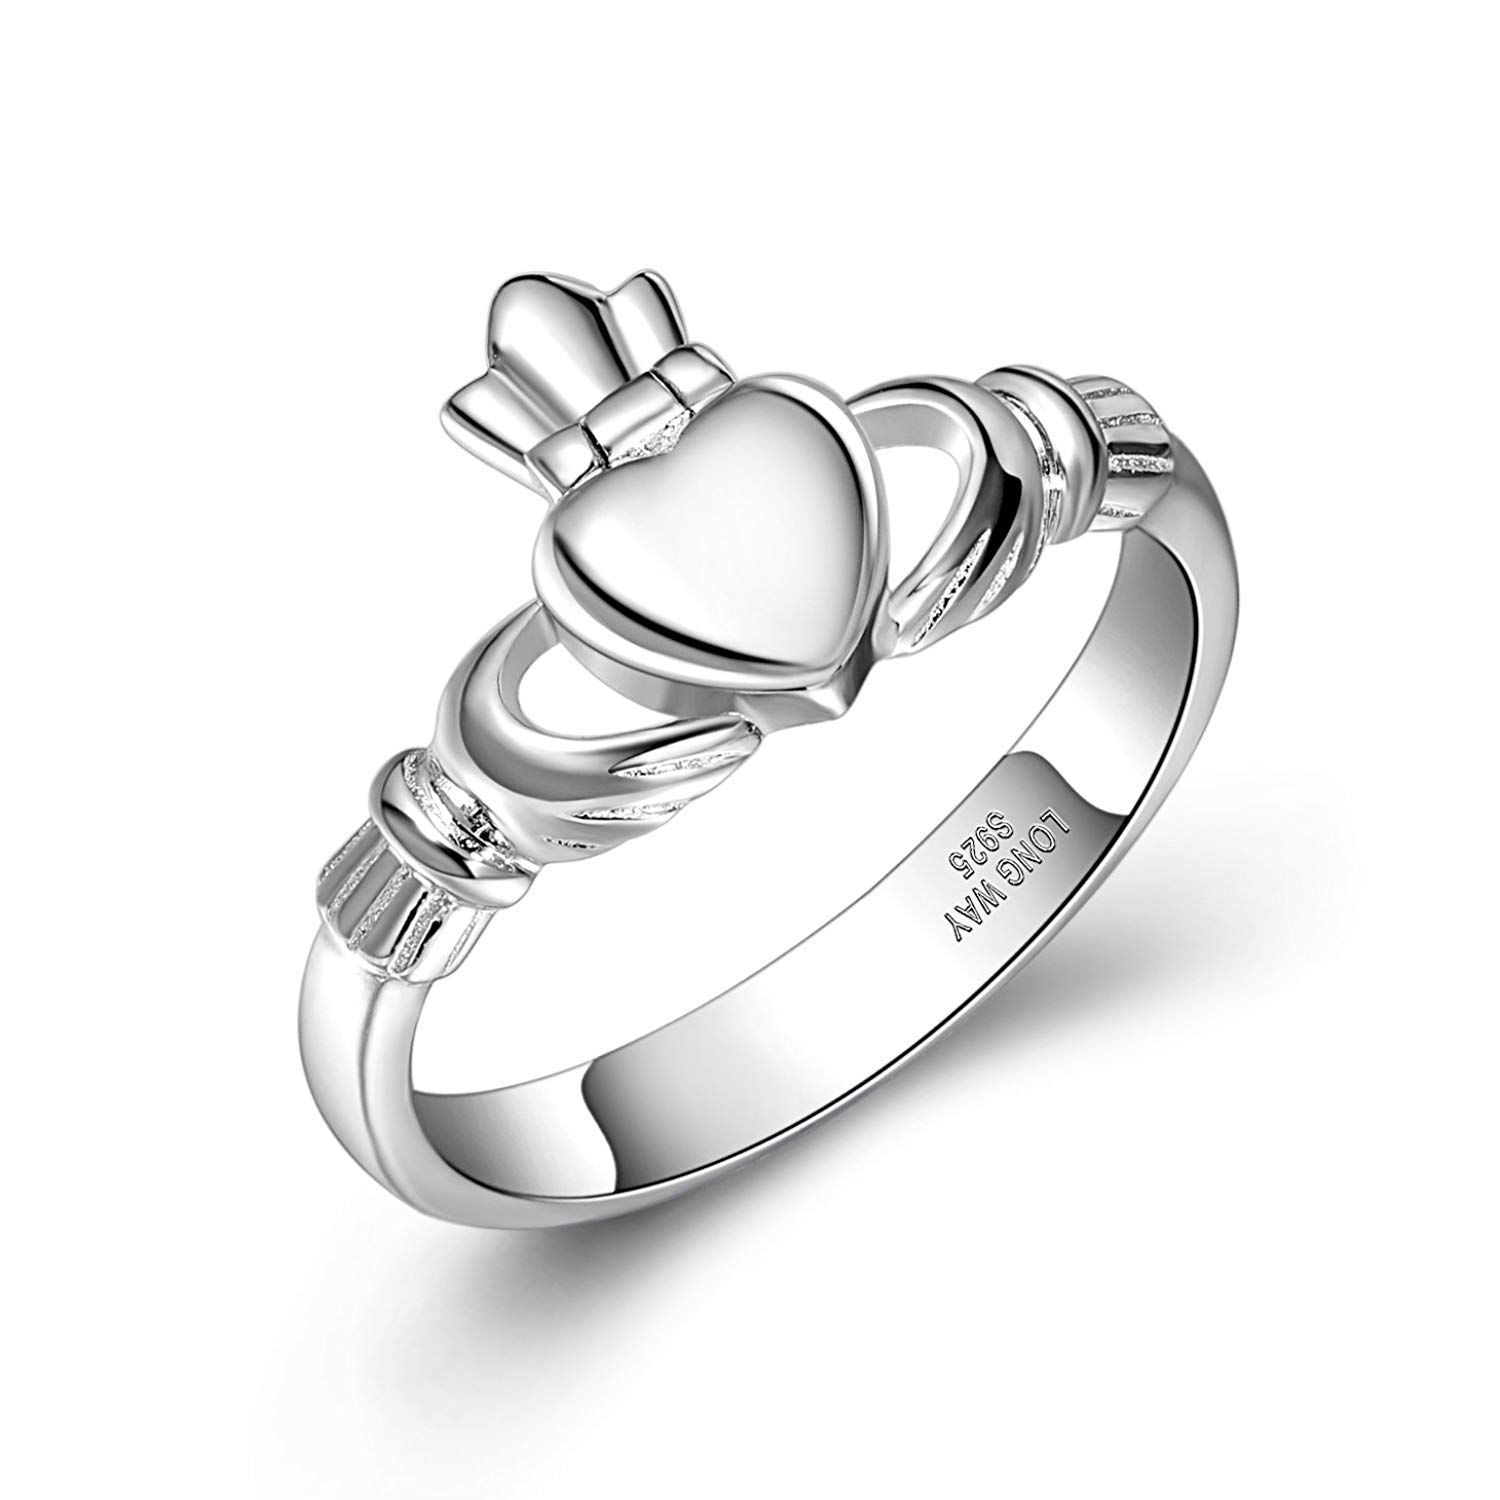 Claddagh ringlong way s925 sterling silver ireland love